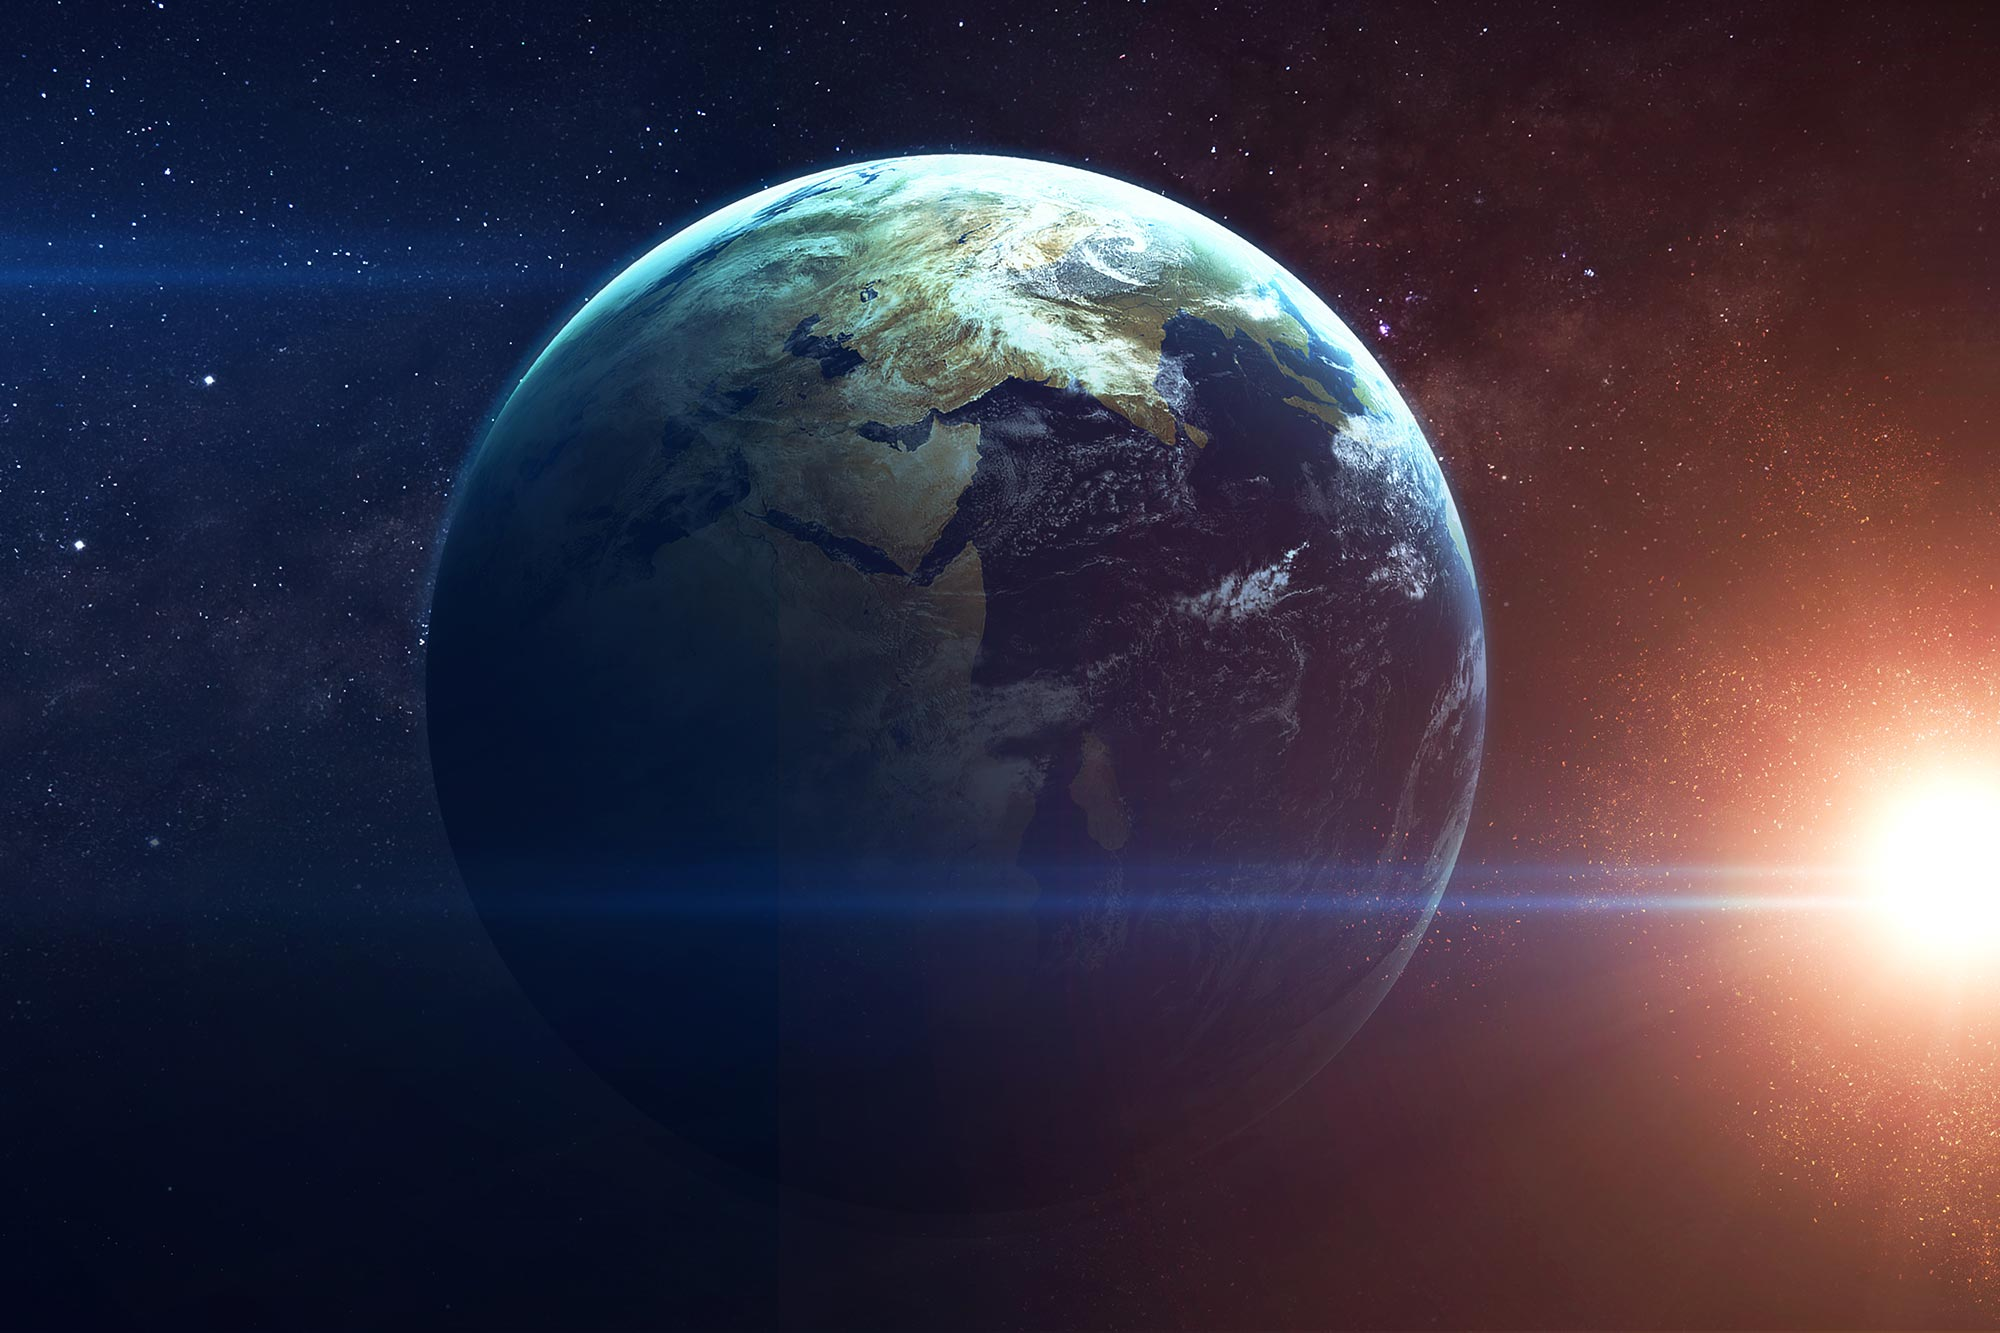 Iron Isotopes Show That Planet Earth Formed Much Faster Than Scientists Thought